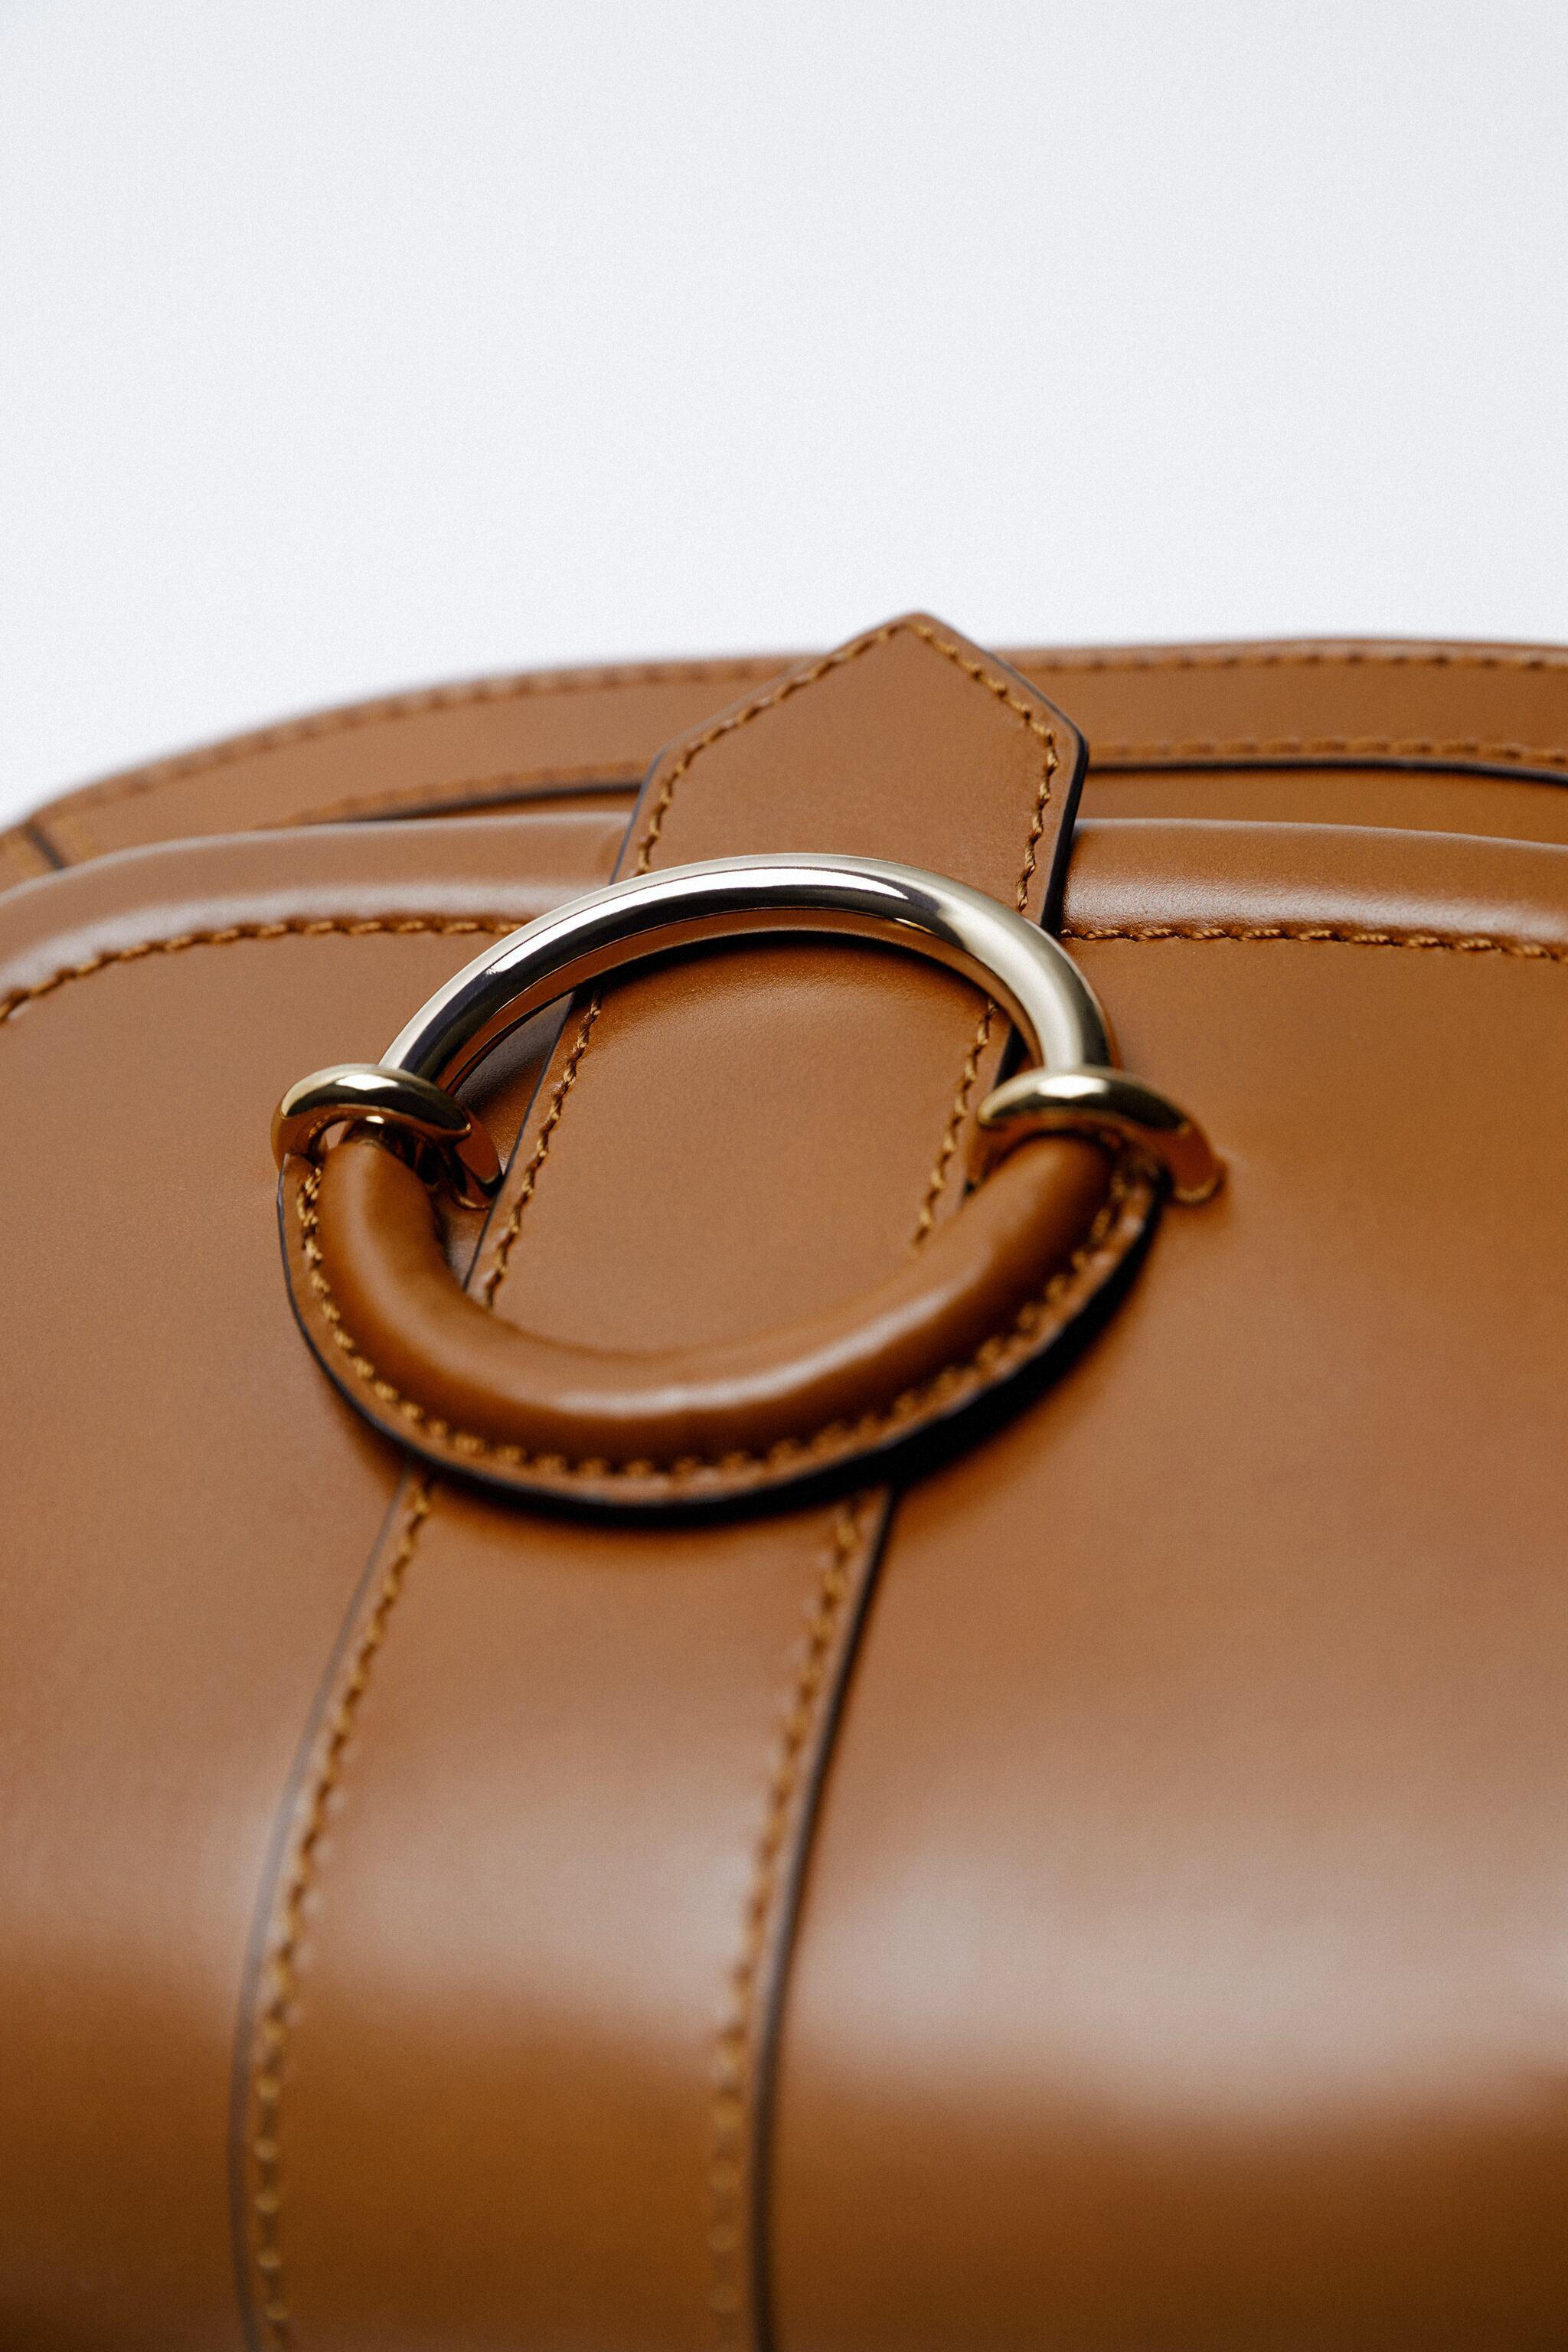 OVAL LEATHER CROSSBODY BAG WITH BUCKLE 5